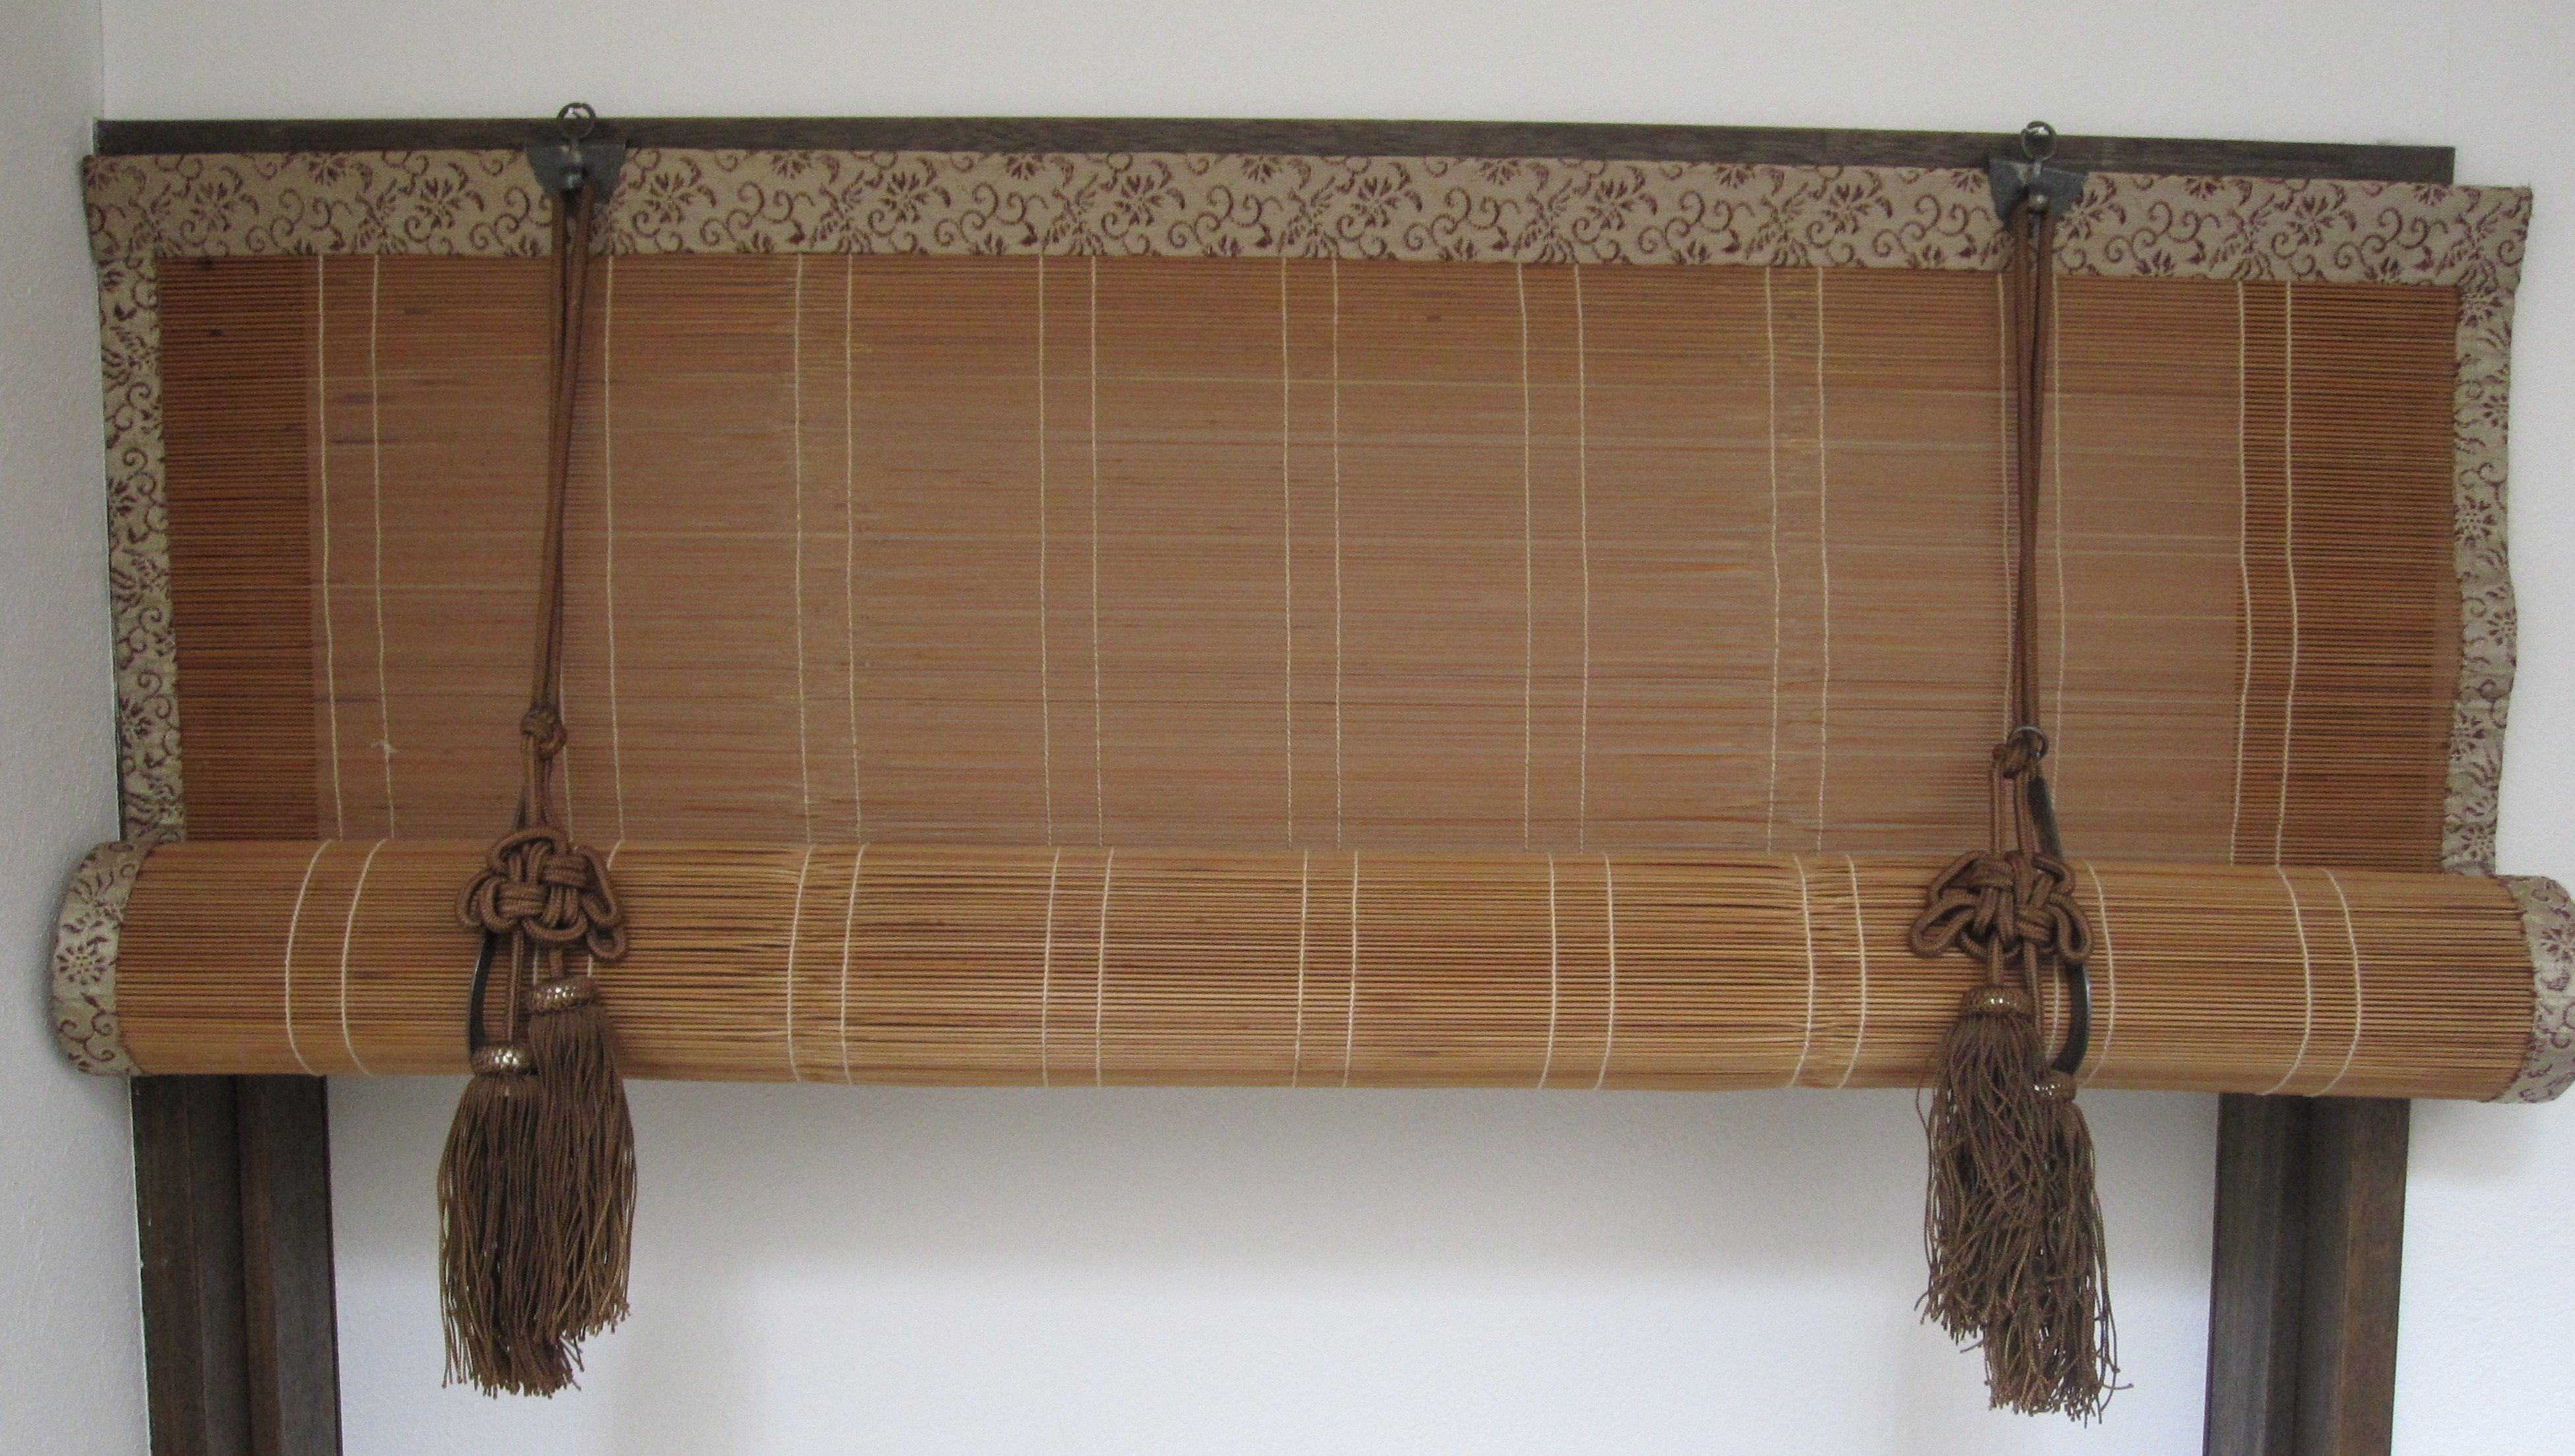 Hung on oil rubbed bronze curtain rod with bamboo roman shades - Sudare Bamboo Blinds